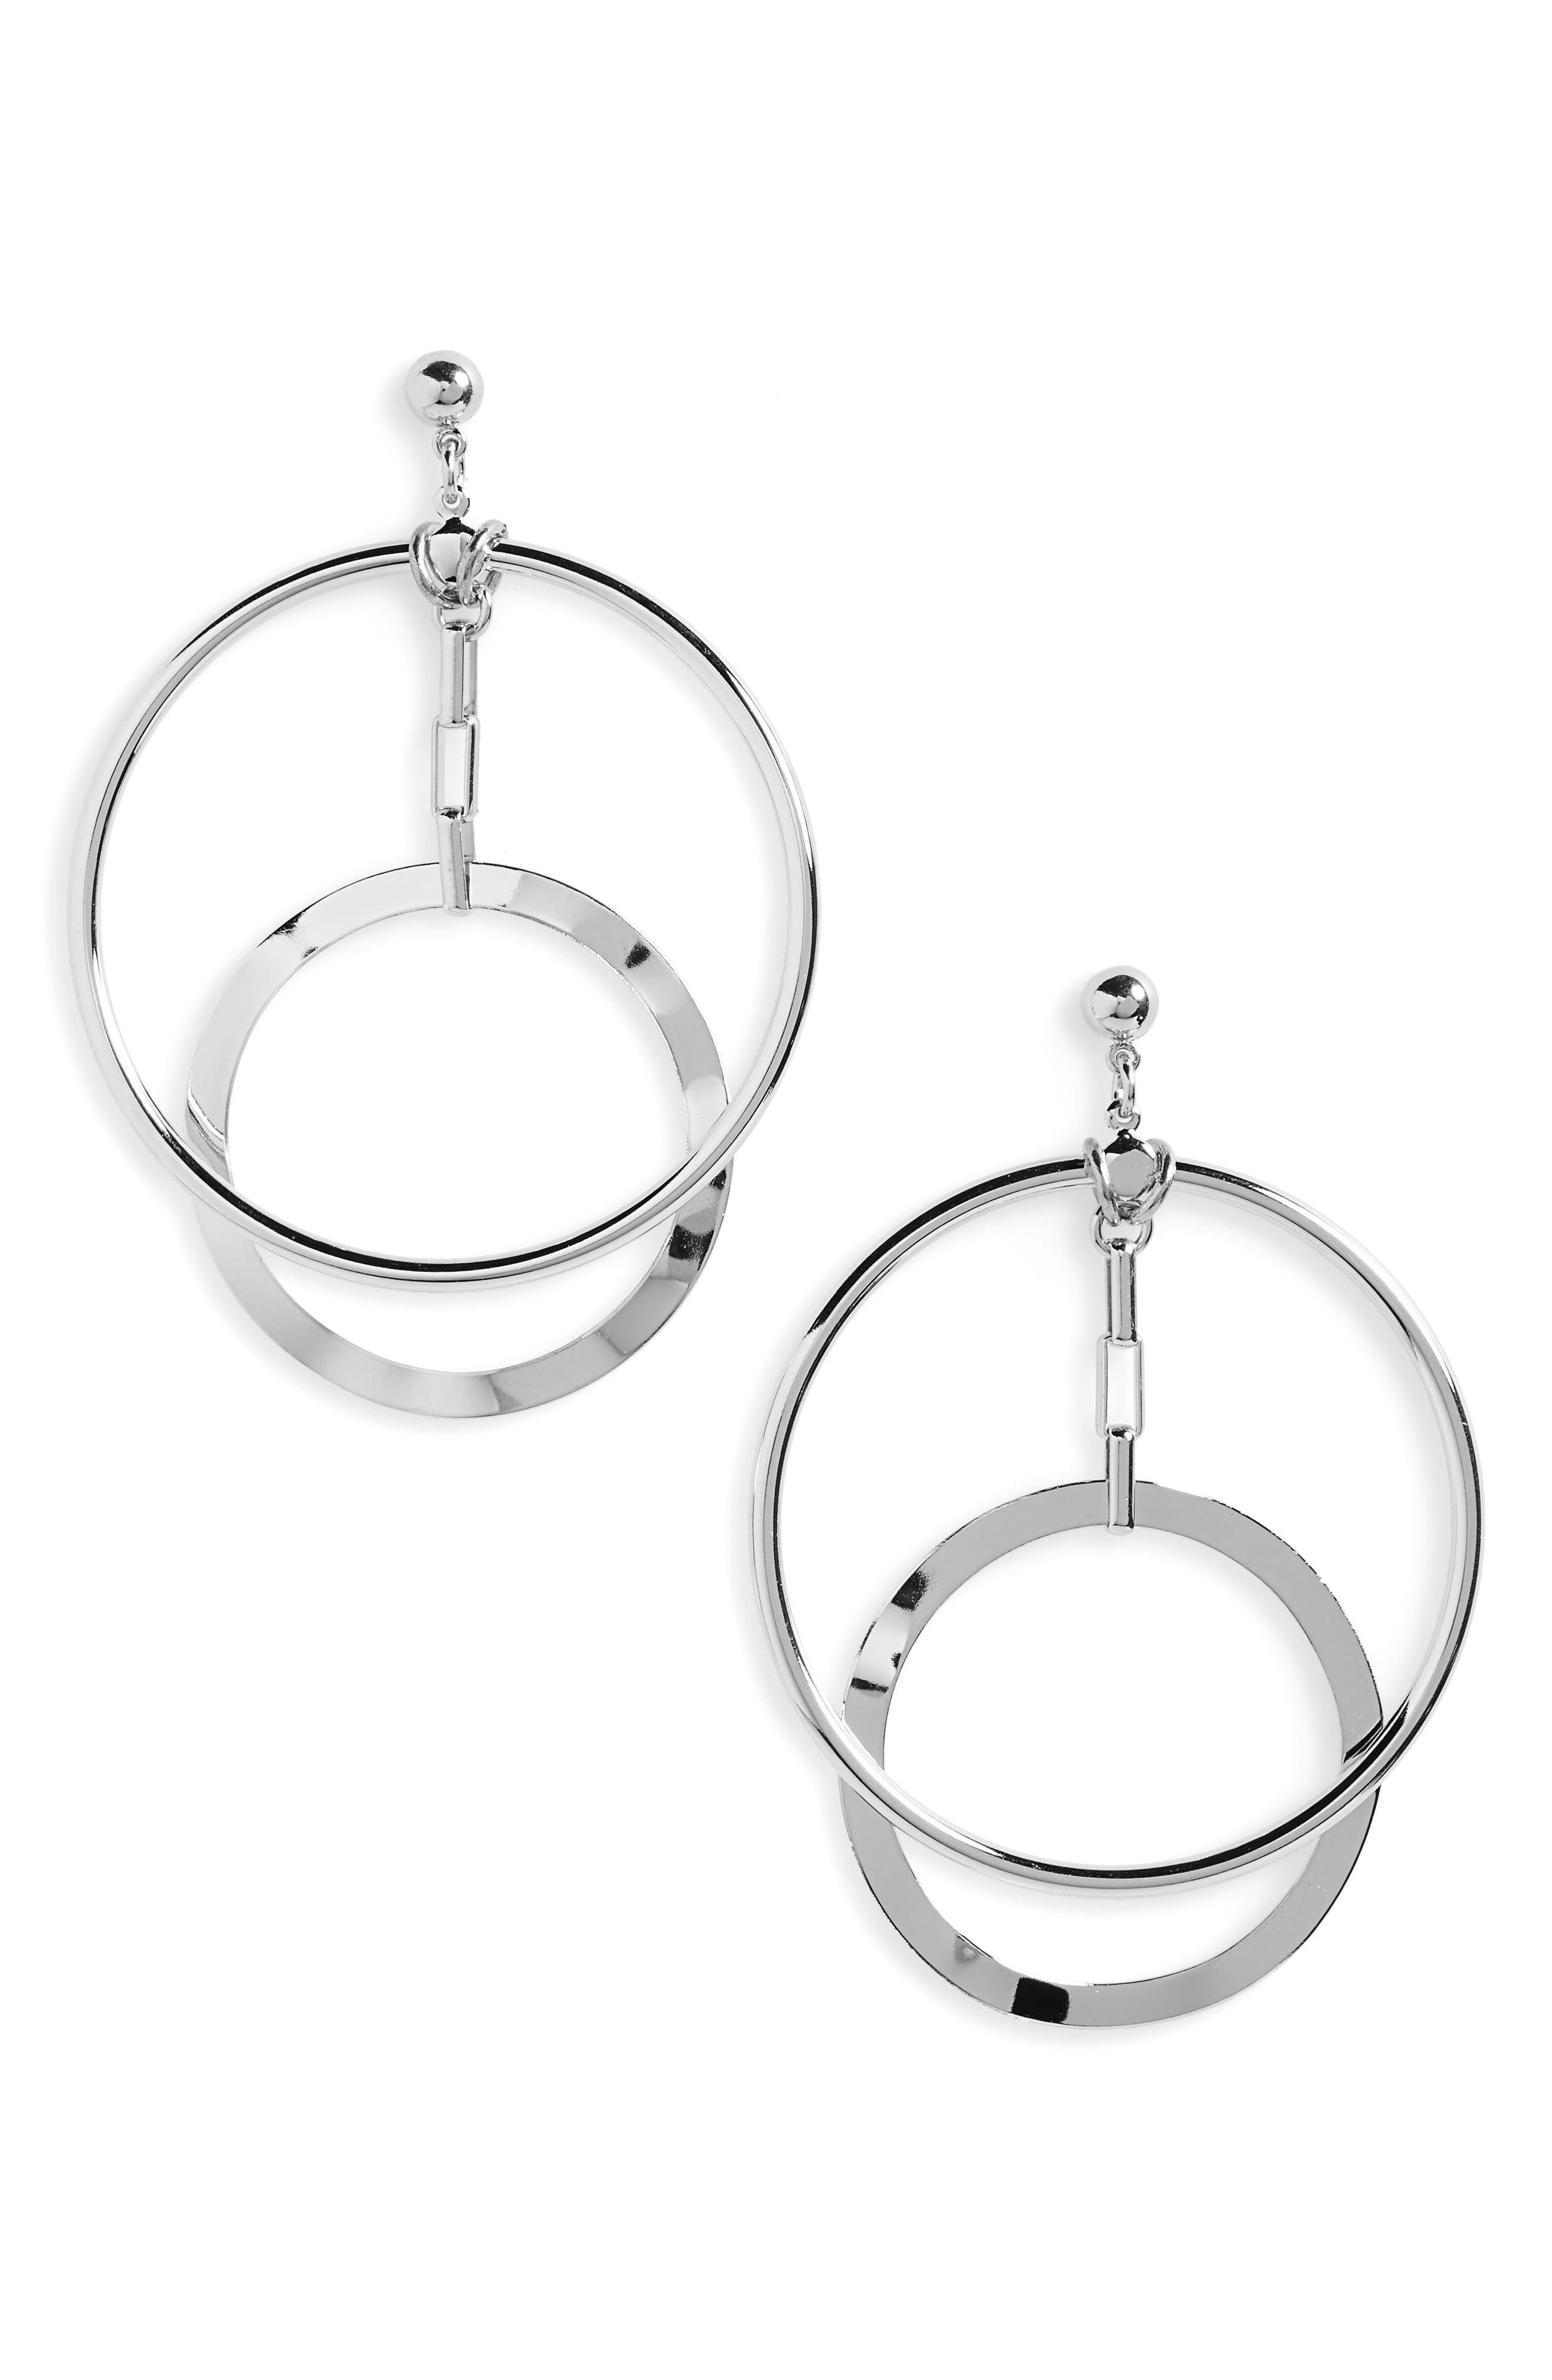 Eclipse Hoop Earrings,                         Main,                         color, SILVER